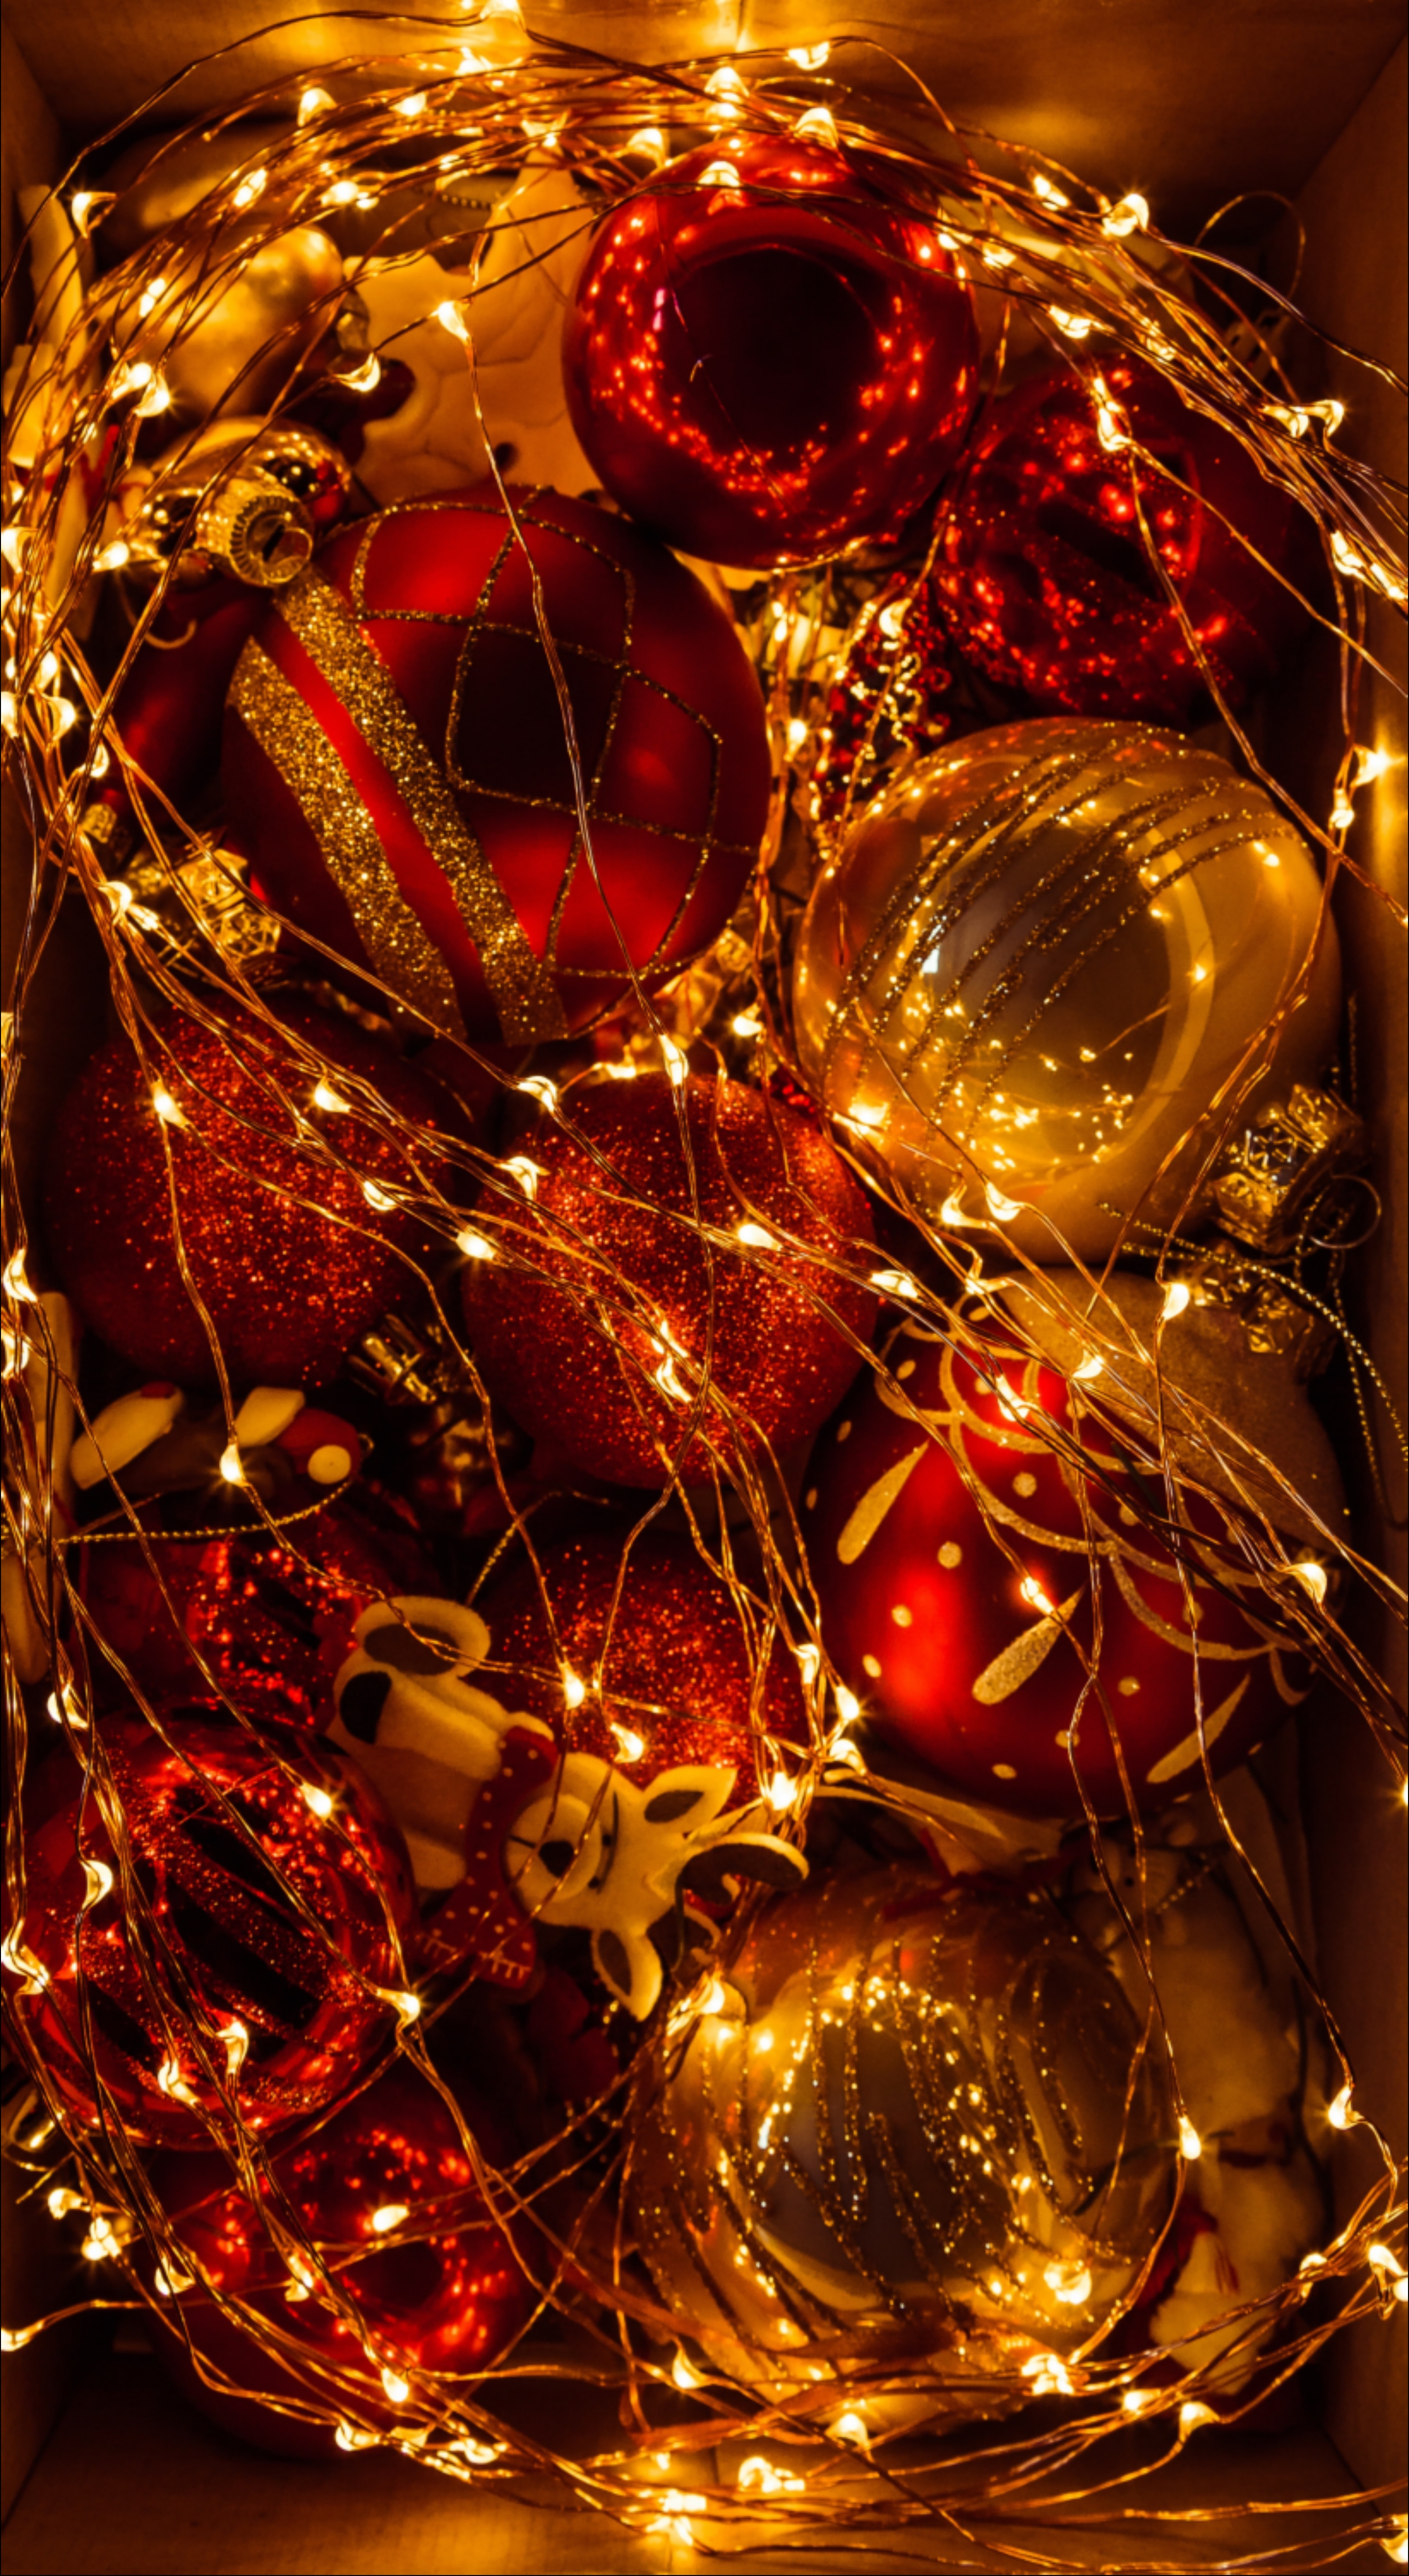 125759 download wallpaper Christmas, Holidays, New Year, Shine, Brilliance, Christmas Decorations, Christmas Tree Toys, Garland, Decoration, Golden screensavers and pictures for free